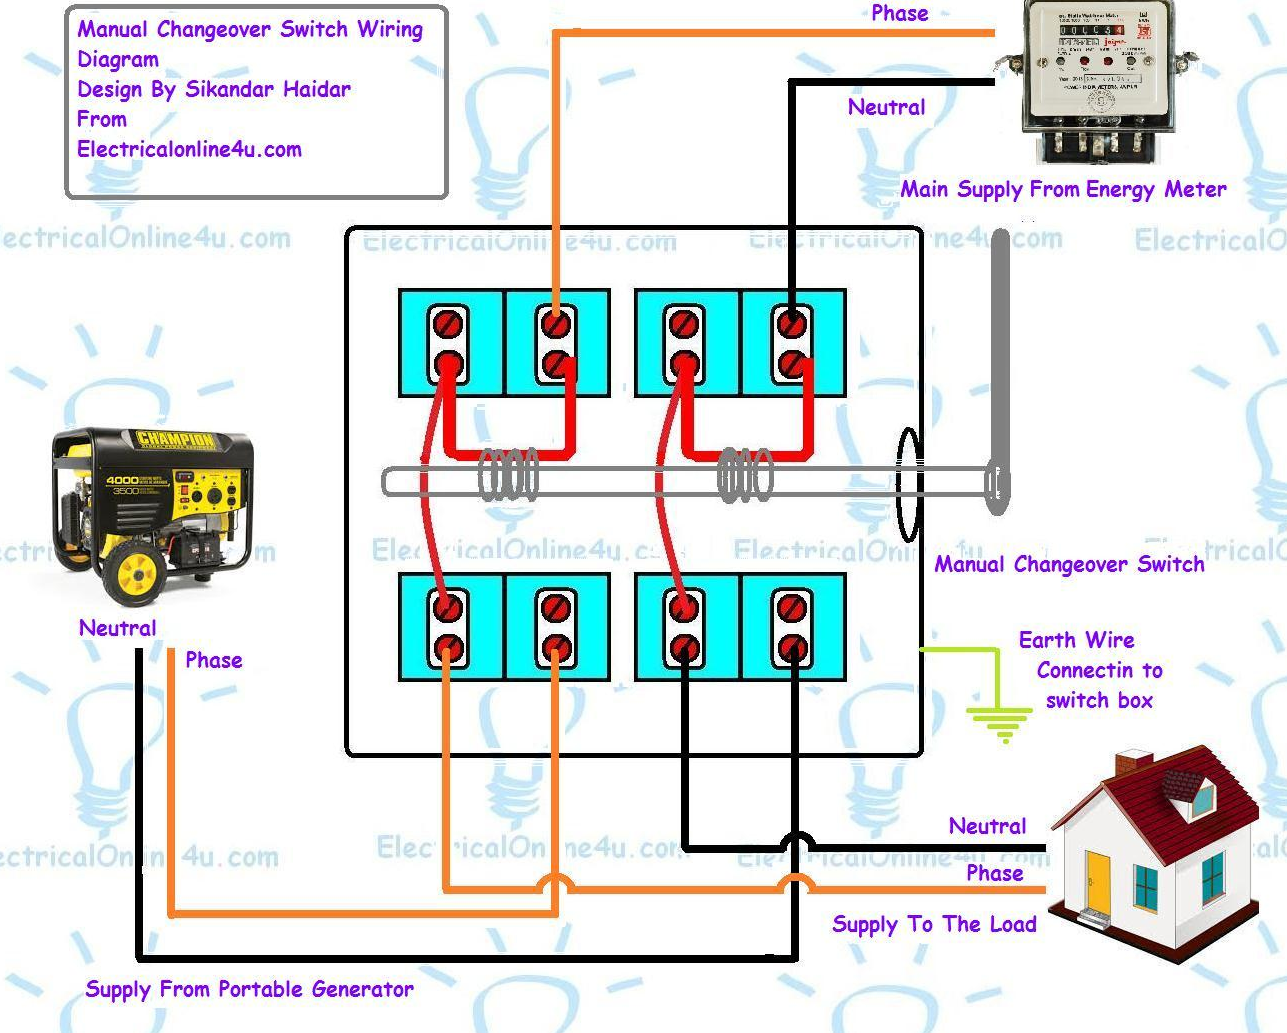 manual%2Bchangeover%2Bswitch%2Bwiring%2Bdiagram manual changeover switch wiring diagram for portable generator online wiring diagram creator at gsmportal.co